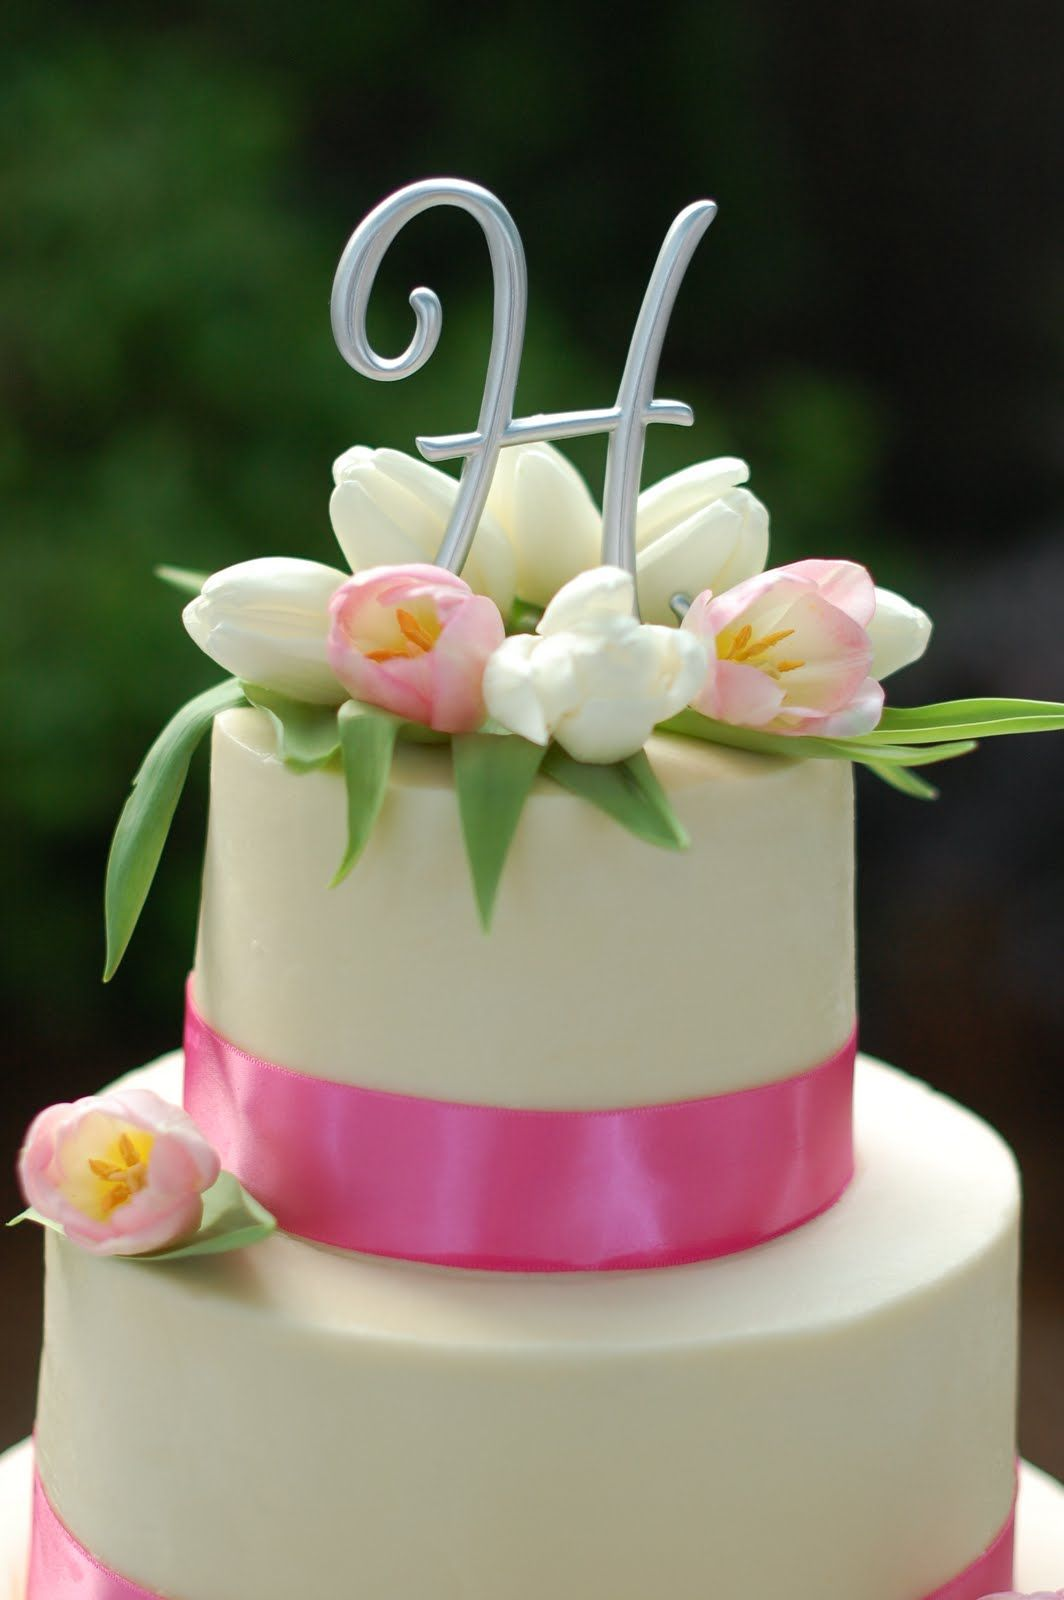 simple cake top with tulips and letter cake creating ...